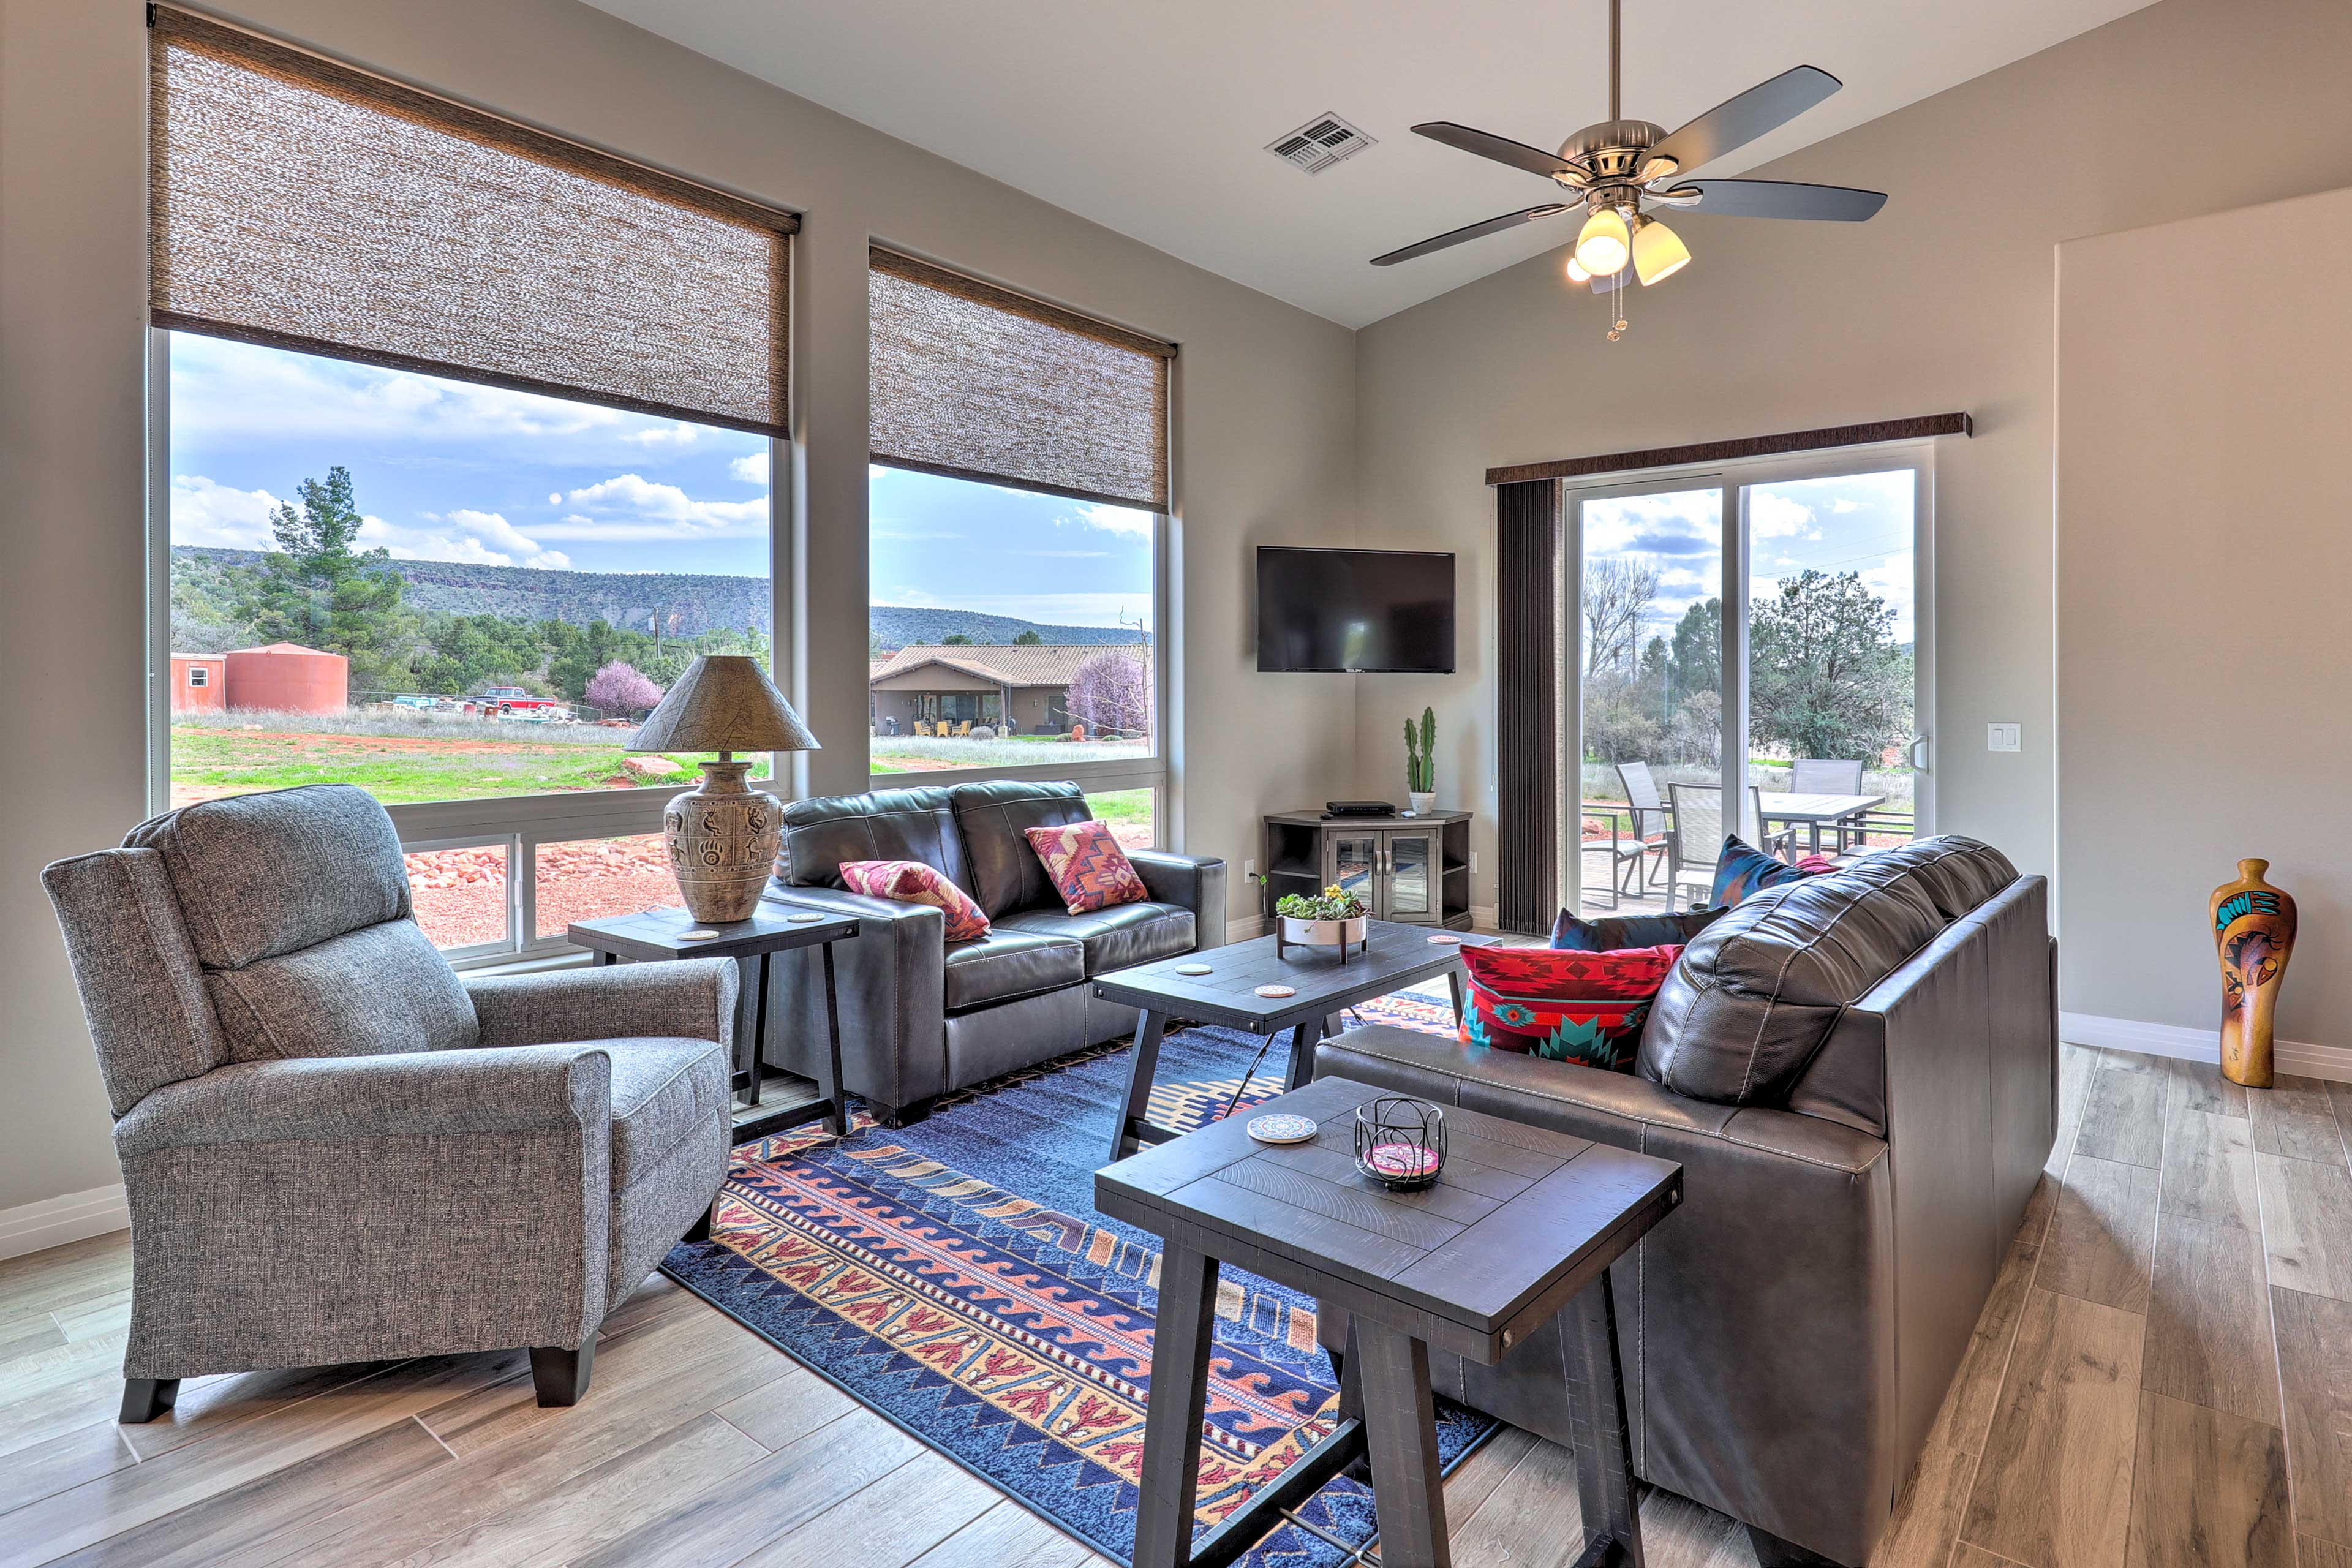 Find all the comforts of home while on vacation in Arizona!